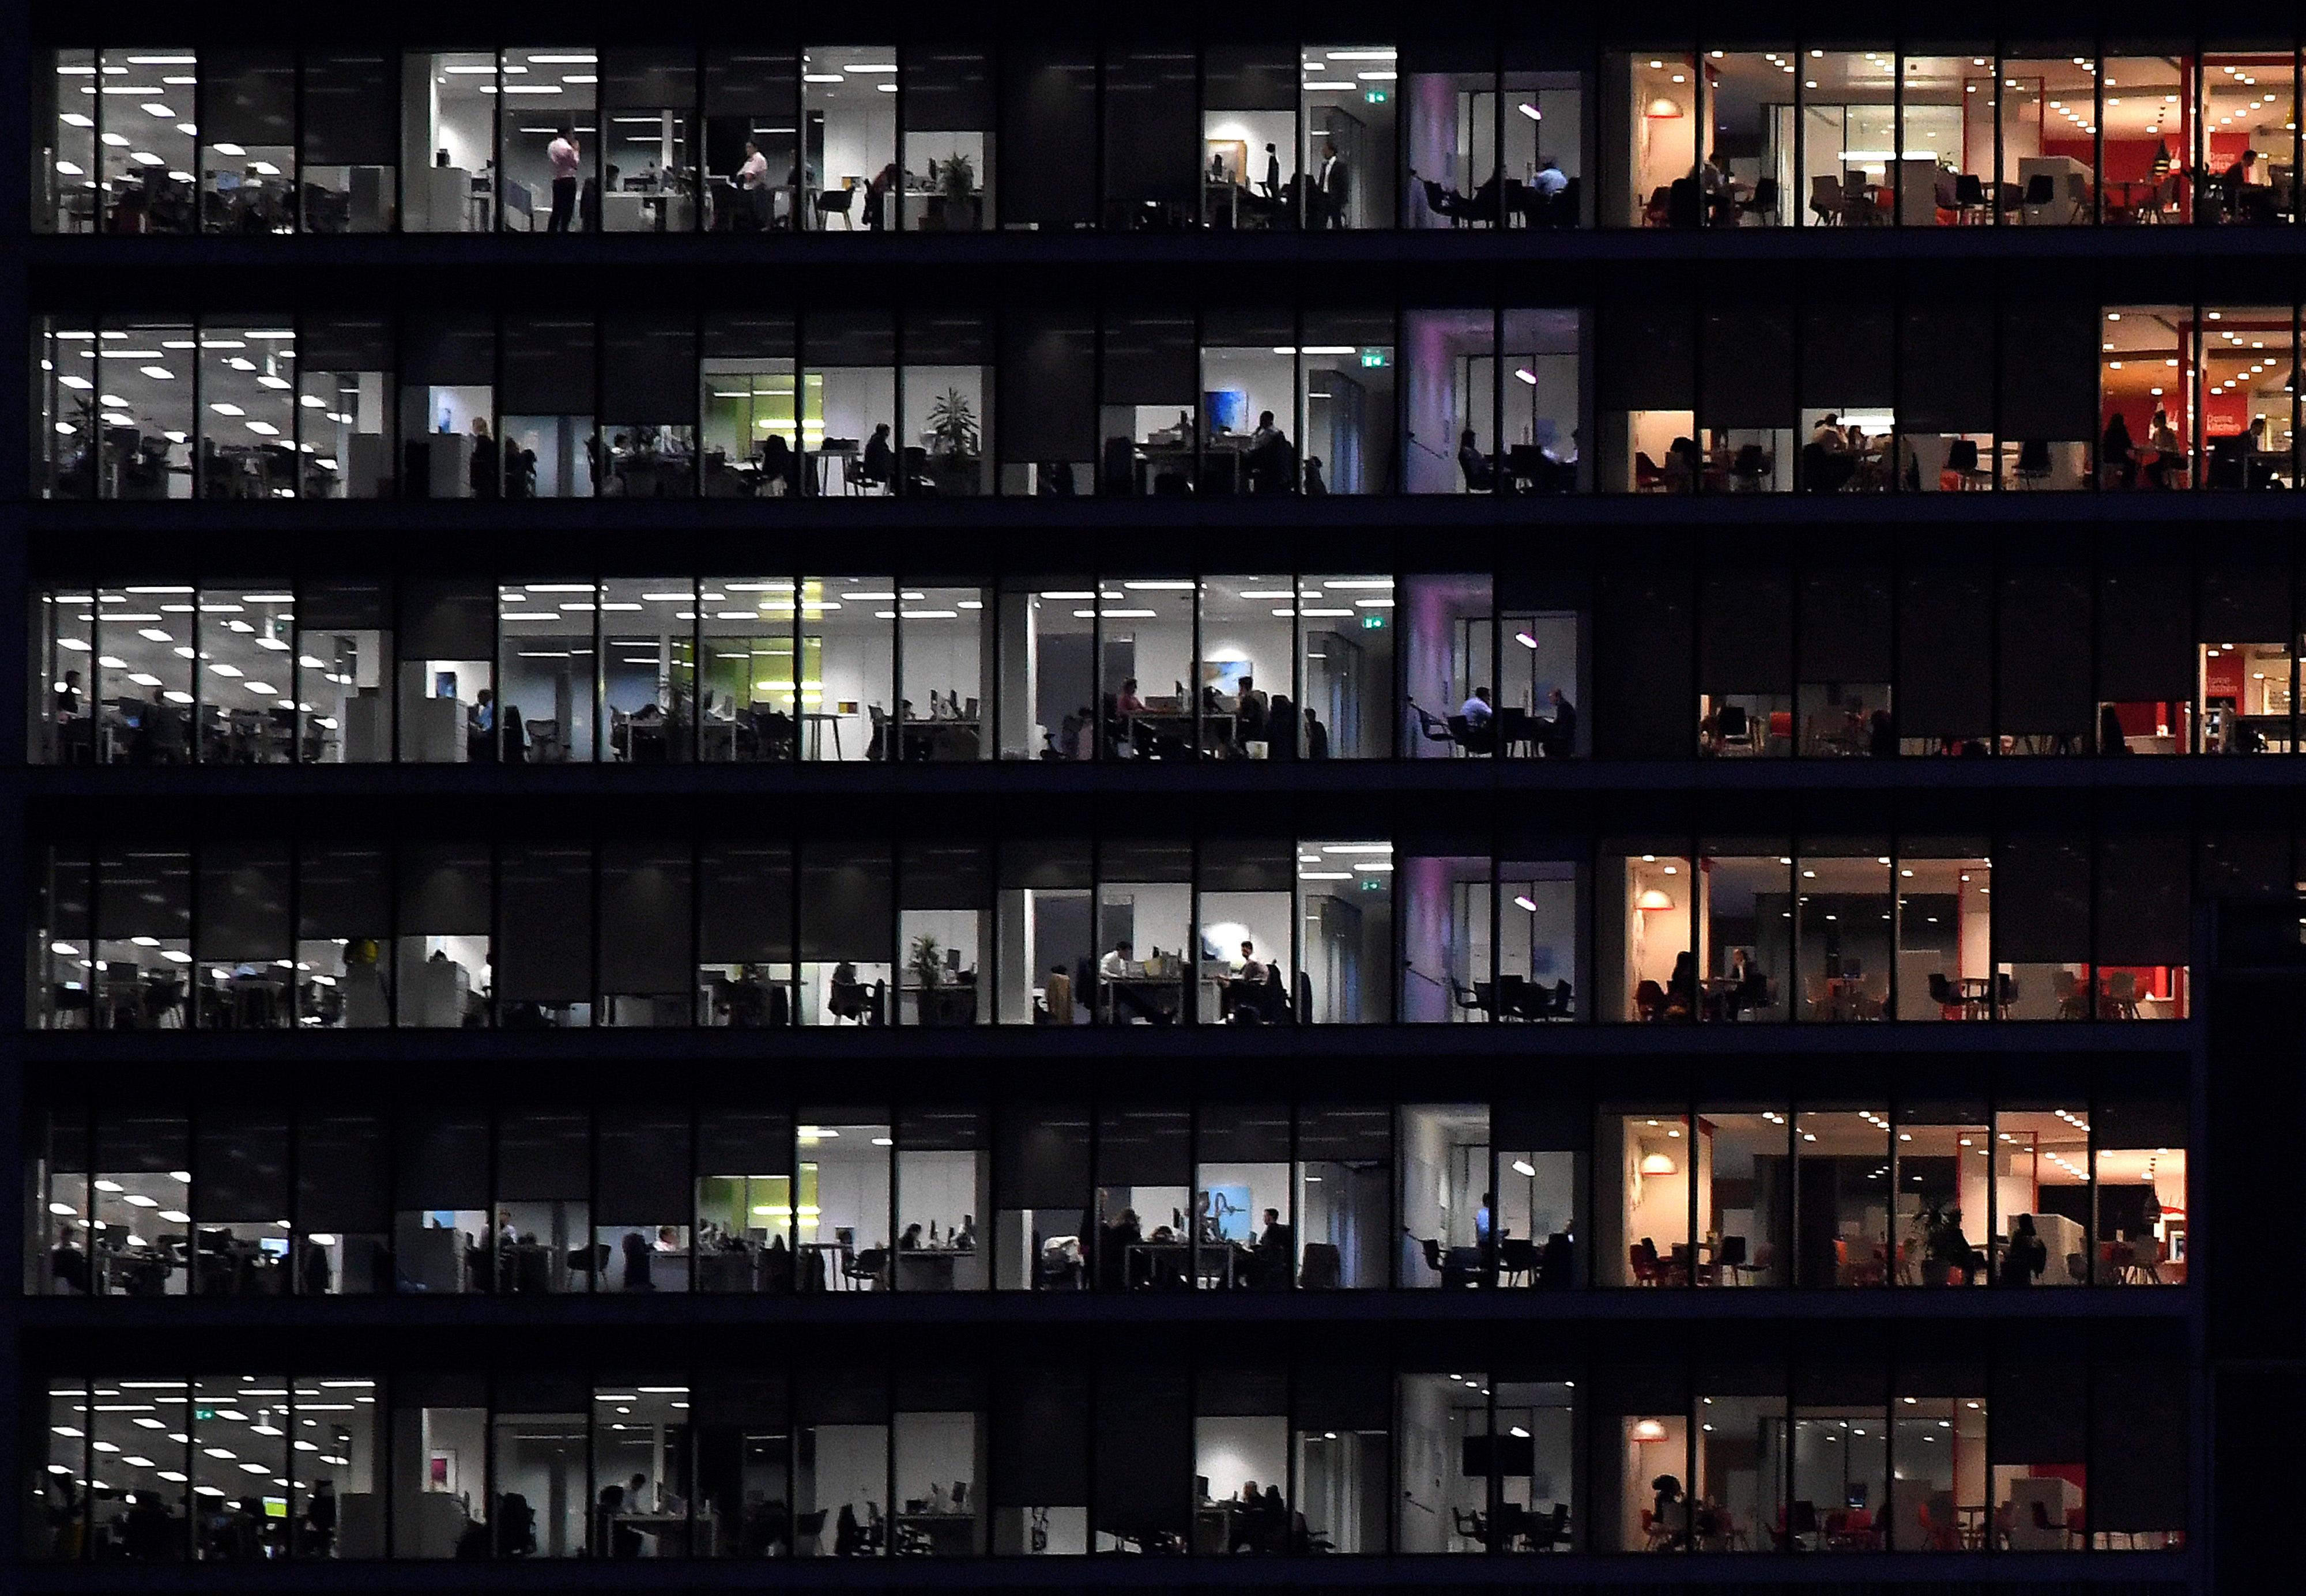 Workers in an office tower in the Canary Wharf financial district at dusk in London, November 17, 2017. The impact of the 2007-2008 financial crisis was particularly severe in Britain. Toby Melville